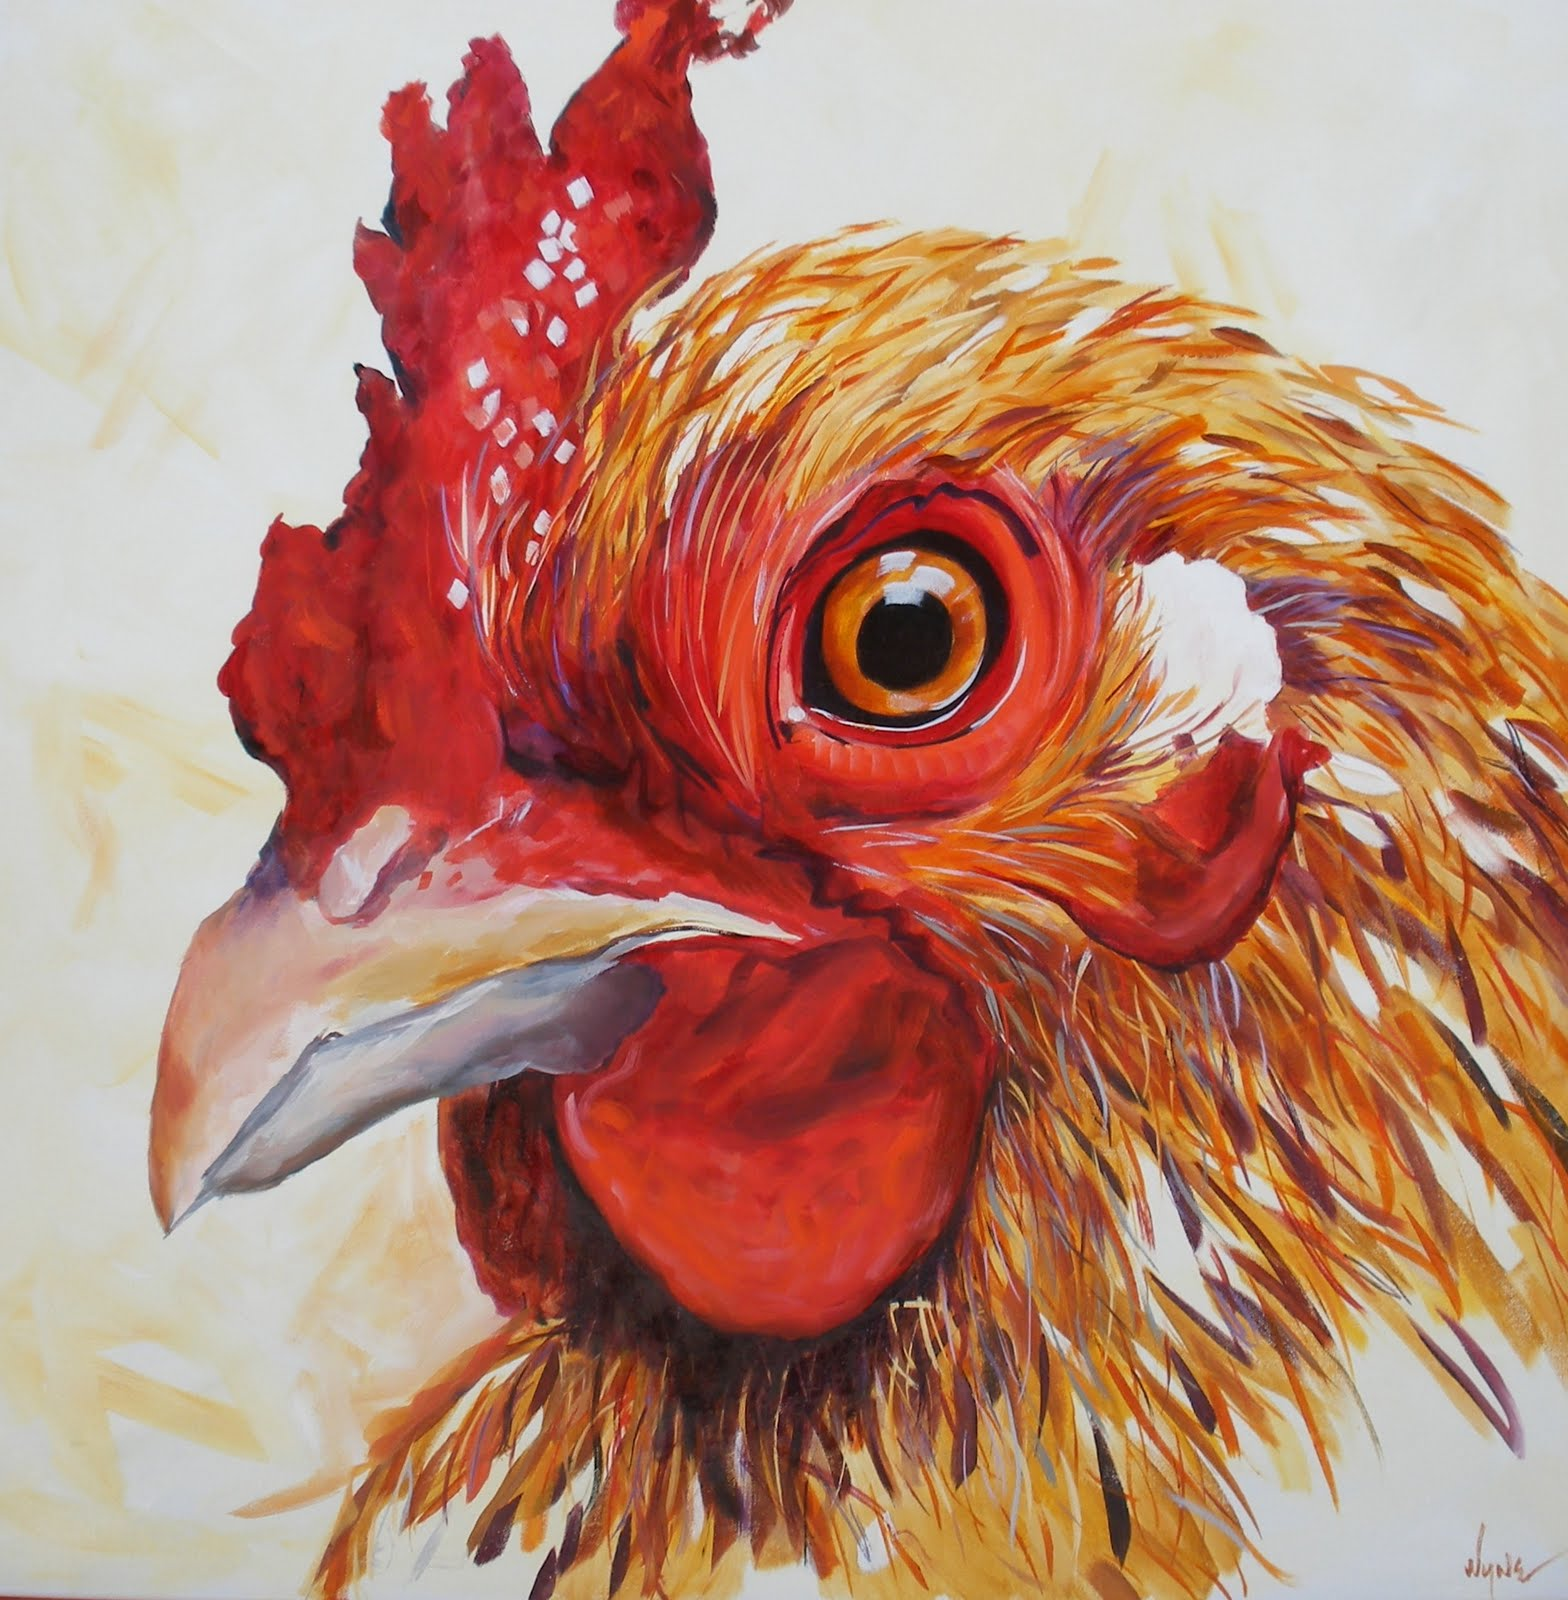 Coop the Chicken by Kay Wyne